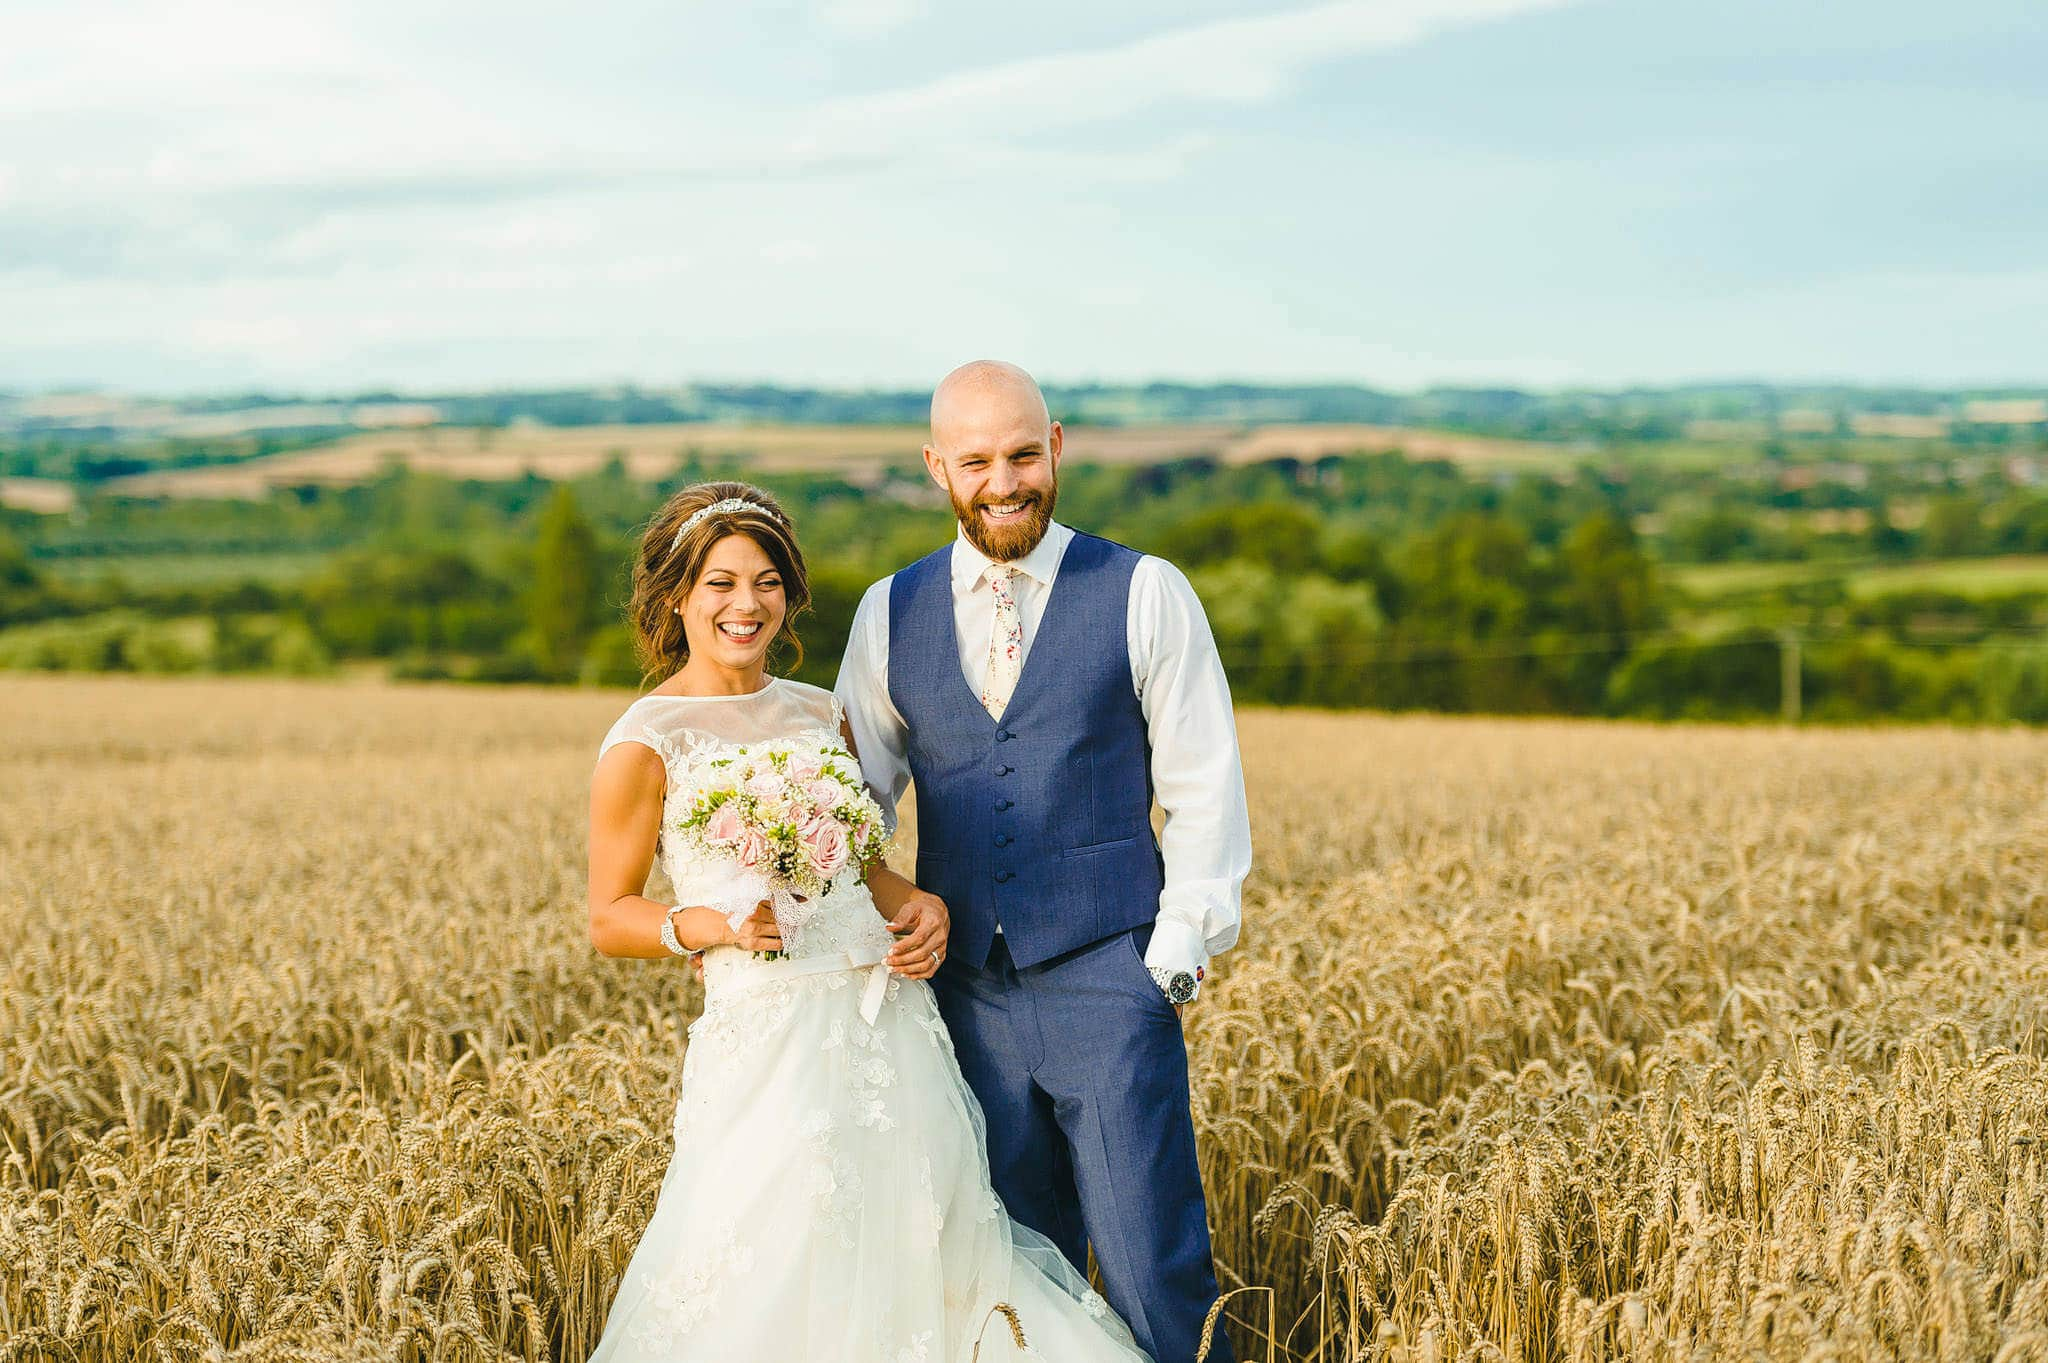 Midlands wedding photography - 2015 Review 30